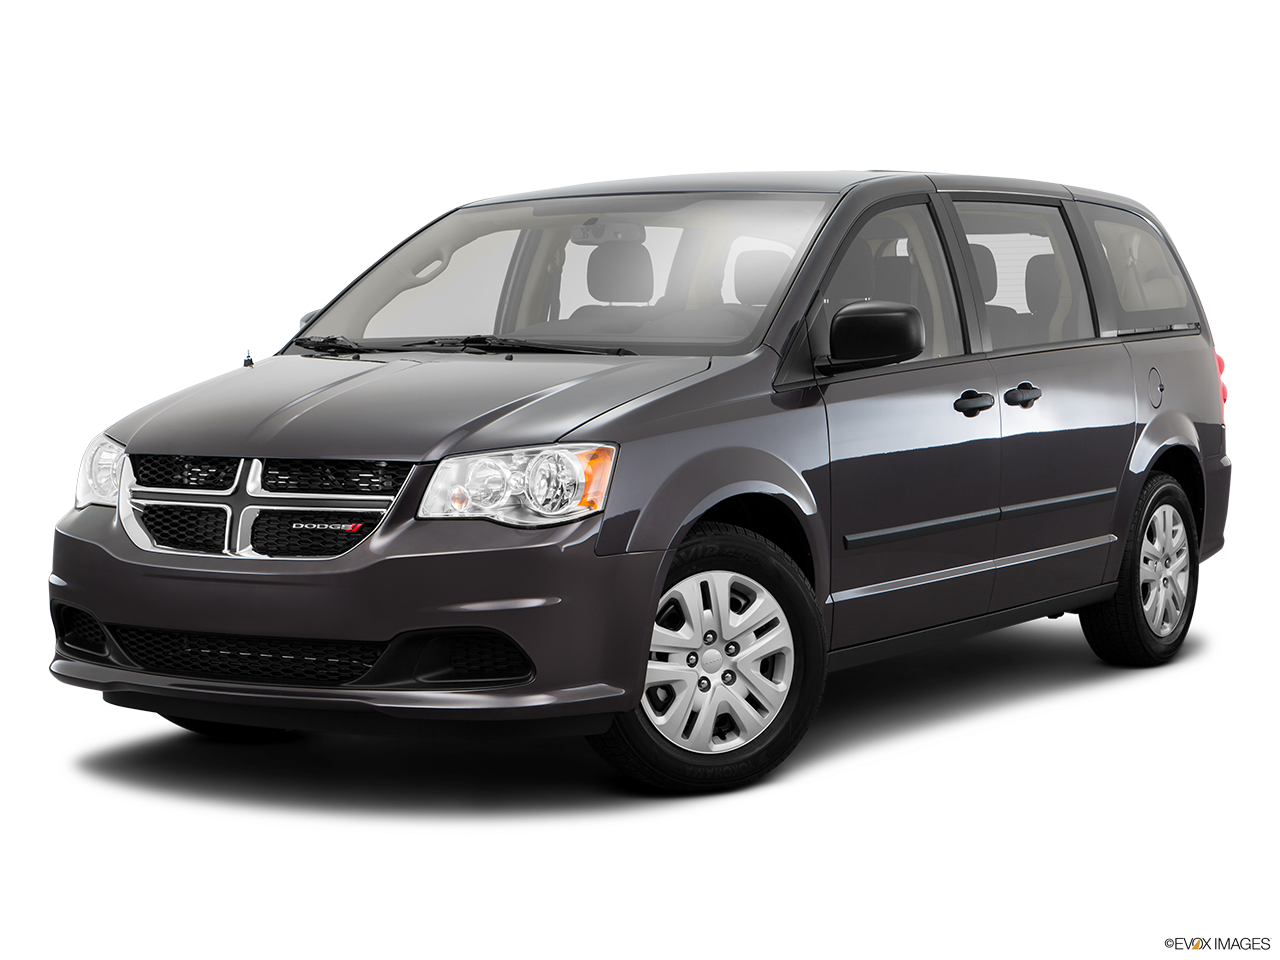 Test Drive A 2016 Dodge Grand Caravan at Nashville Chrysler Dodge Jeep RAM in Antioch